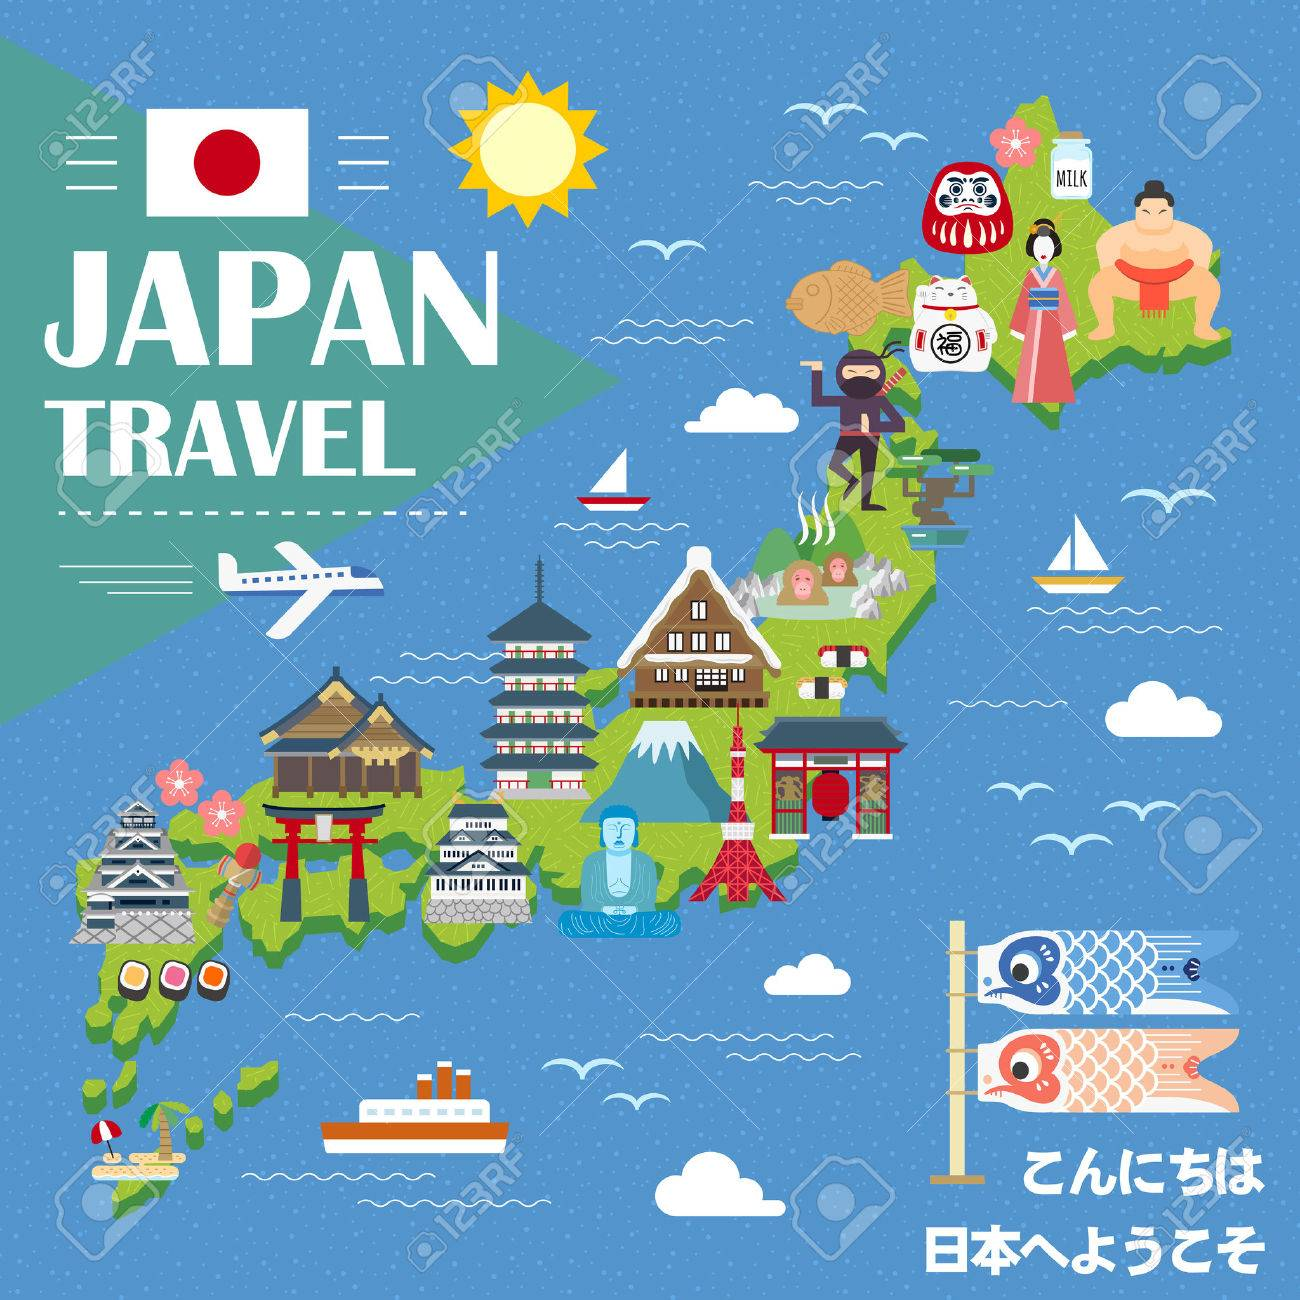 Lovely Japan Travel Map Hello And Welcome To Japan In Japanese Royalty Free Cliparts Vectors And Stock Illustration Image 54693108